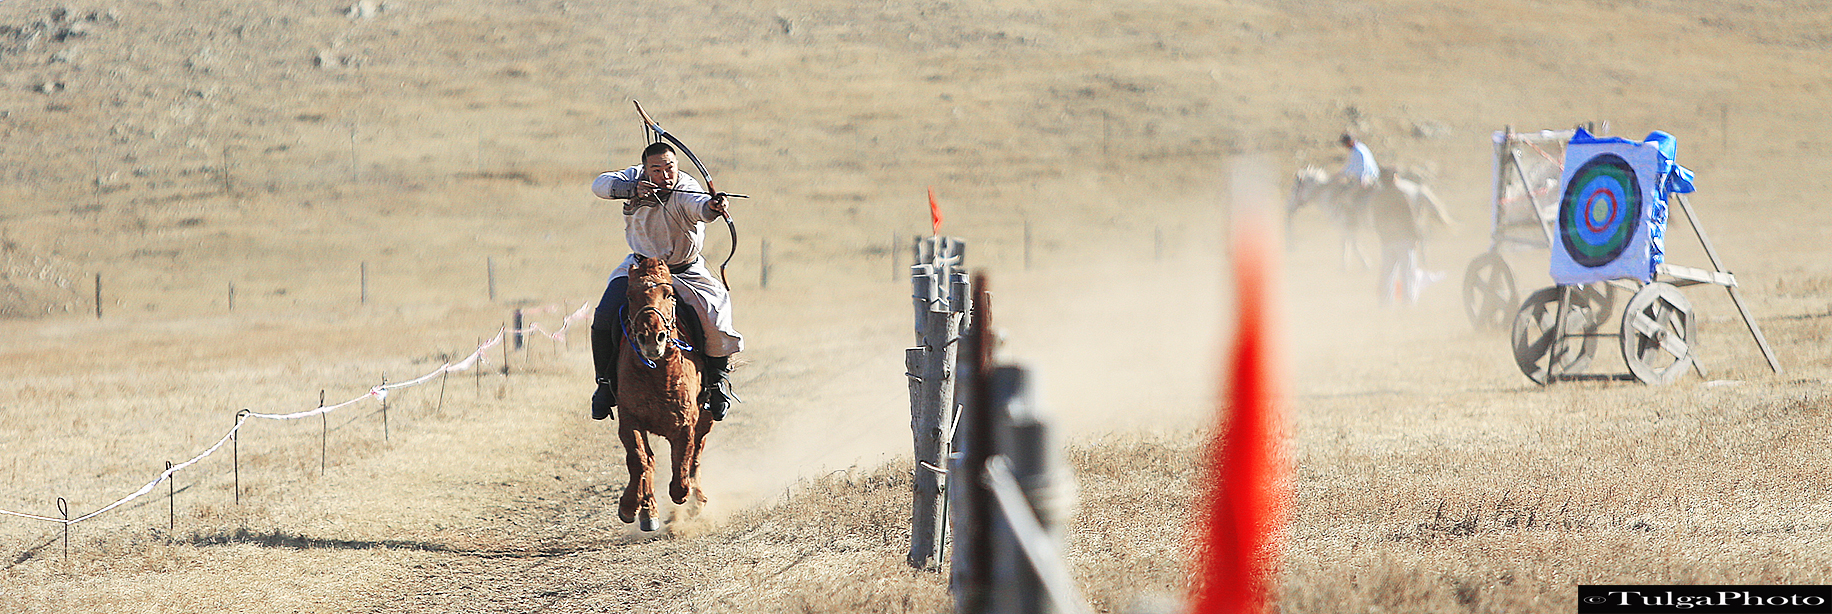 Mounted Archers in Mongolia | Horse Archery Tour 2019